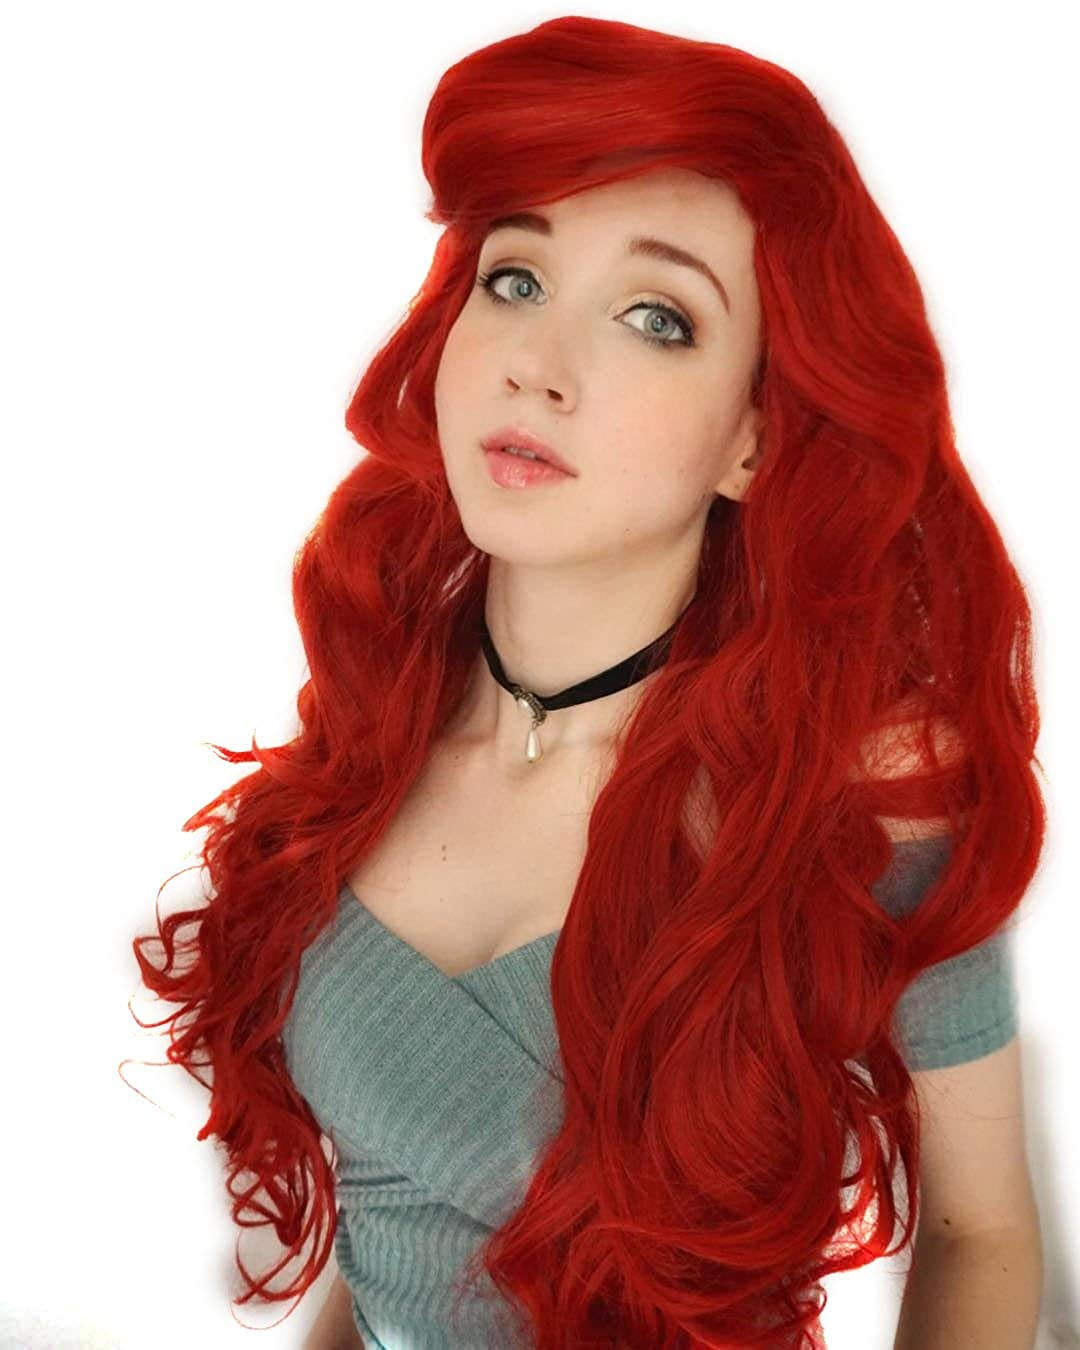 Probeauty Mermaid Hair Wig Long Curly Wavy Red Cosplay Costume Wigs for Women+Wig Cap